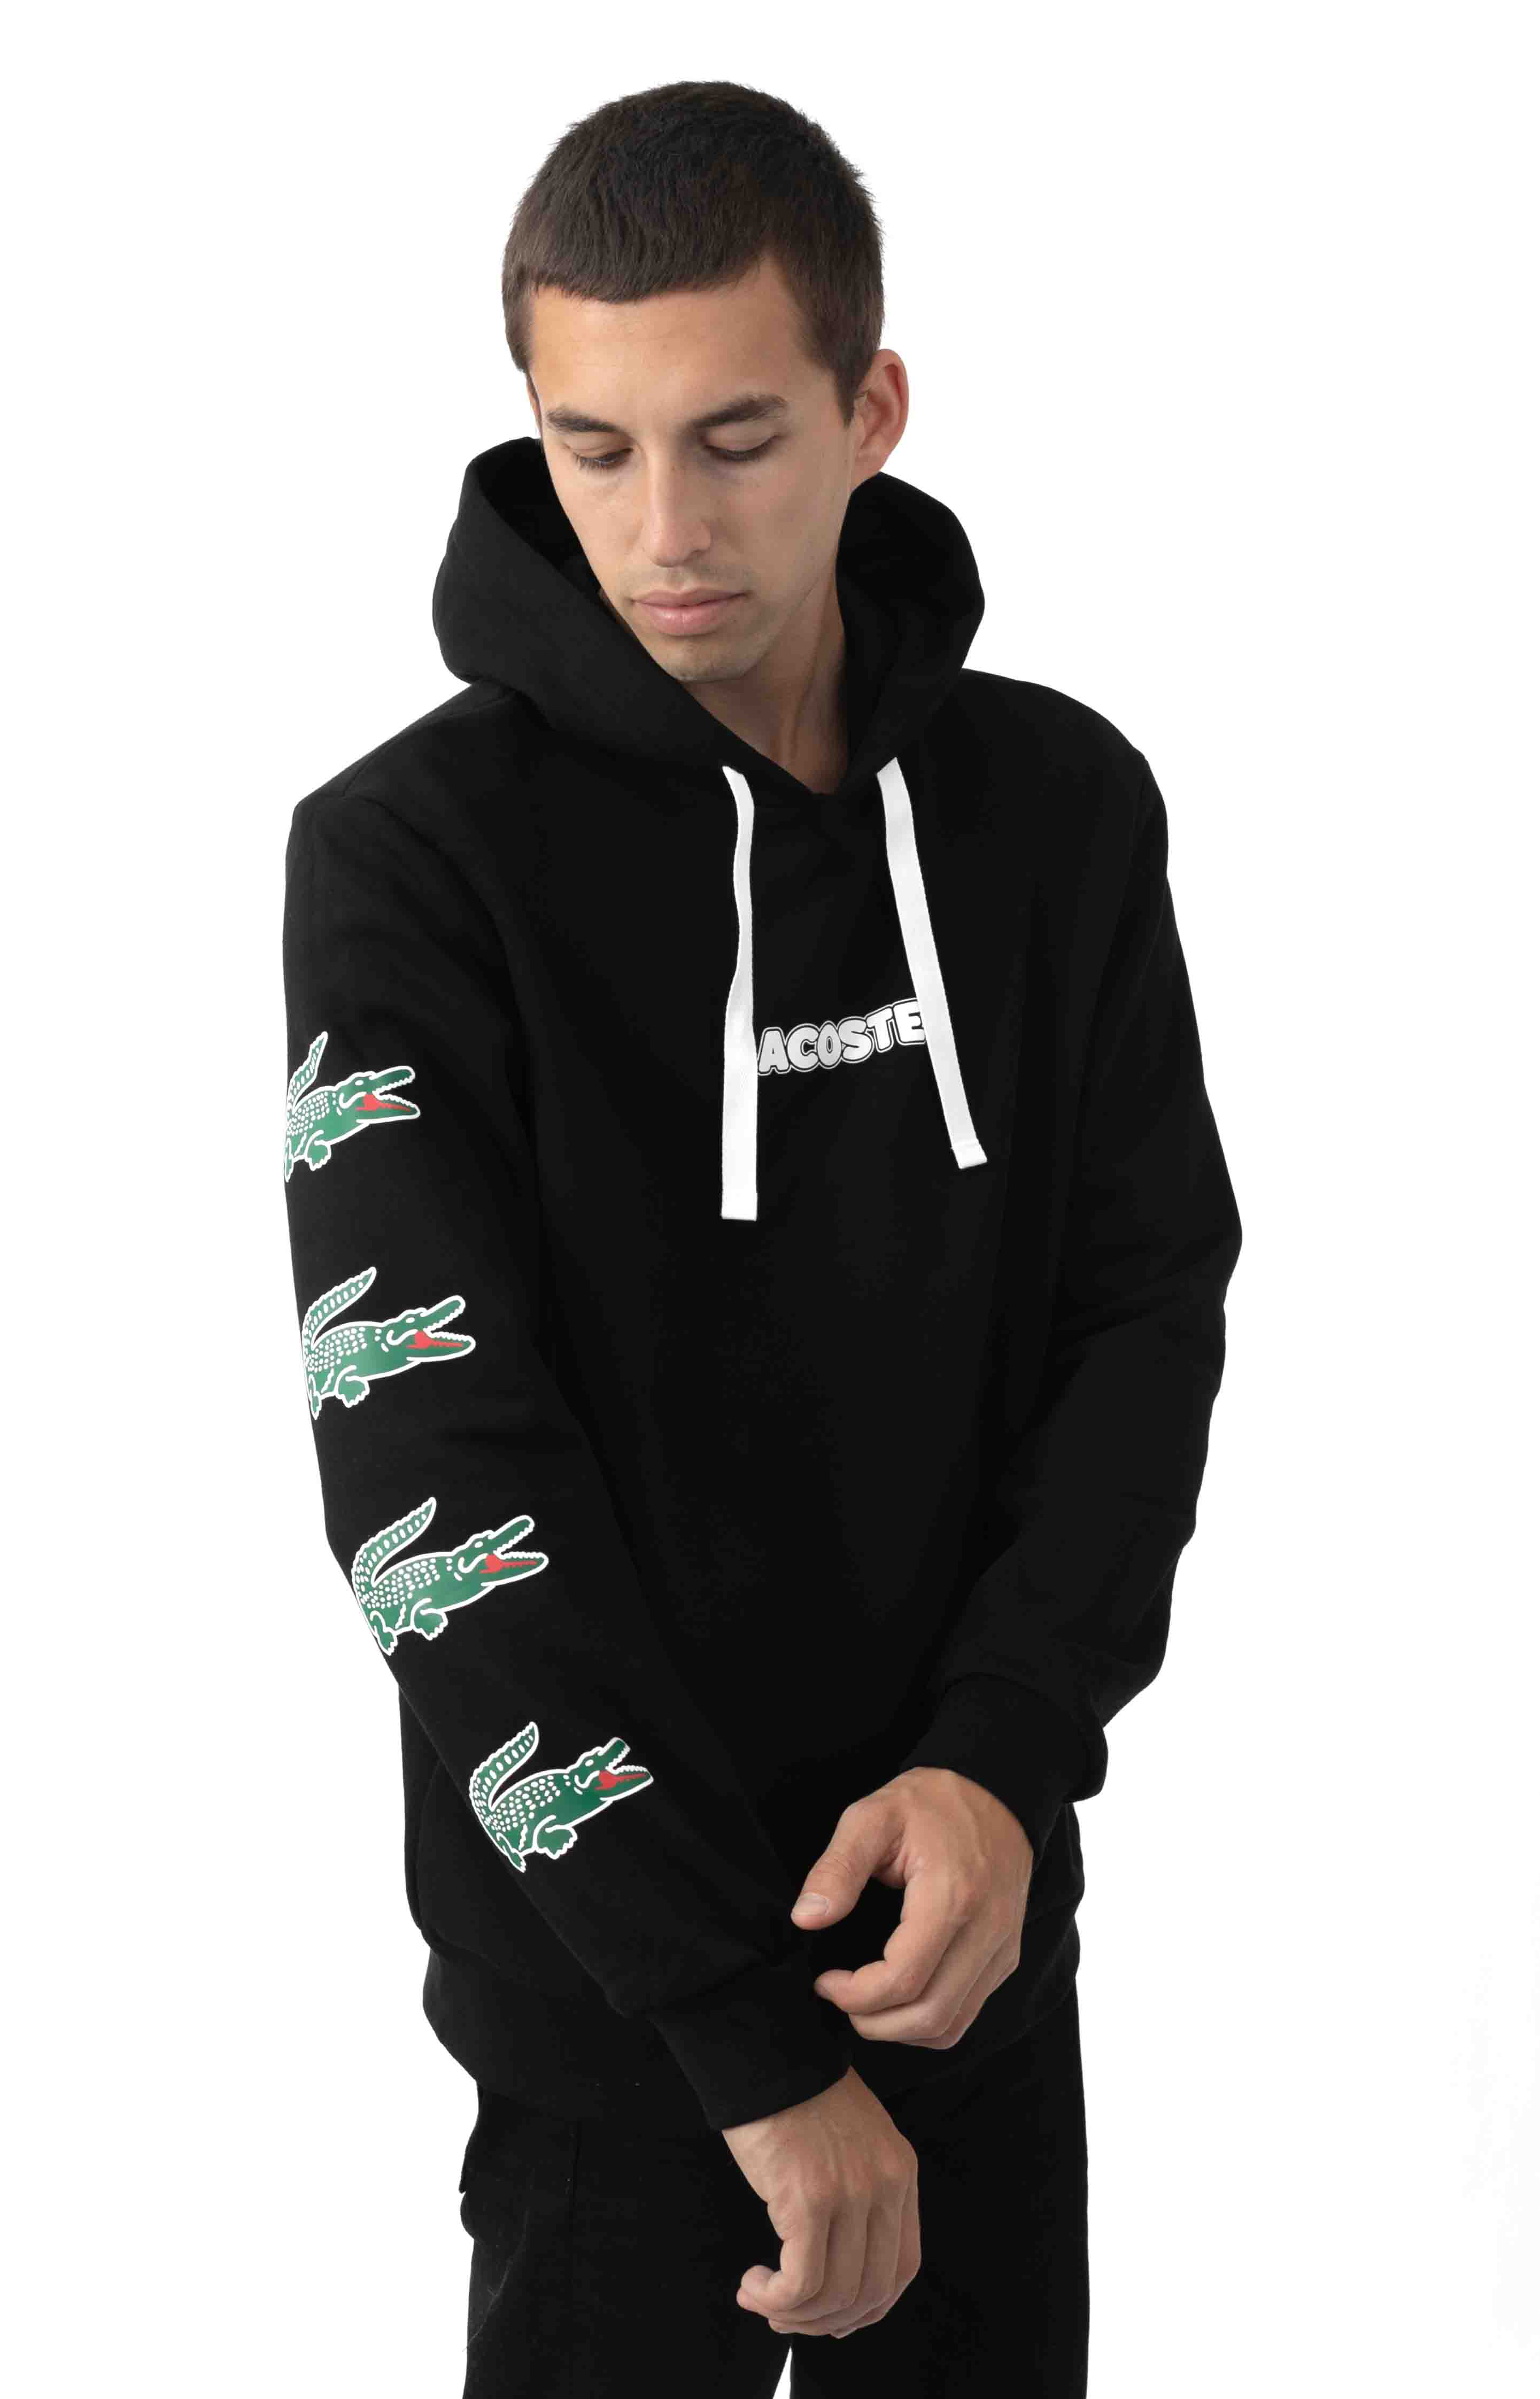 Sport Crocodile Print Hooded Cotton Sweatshirt 2